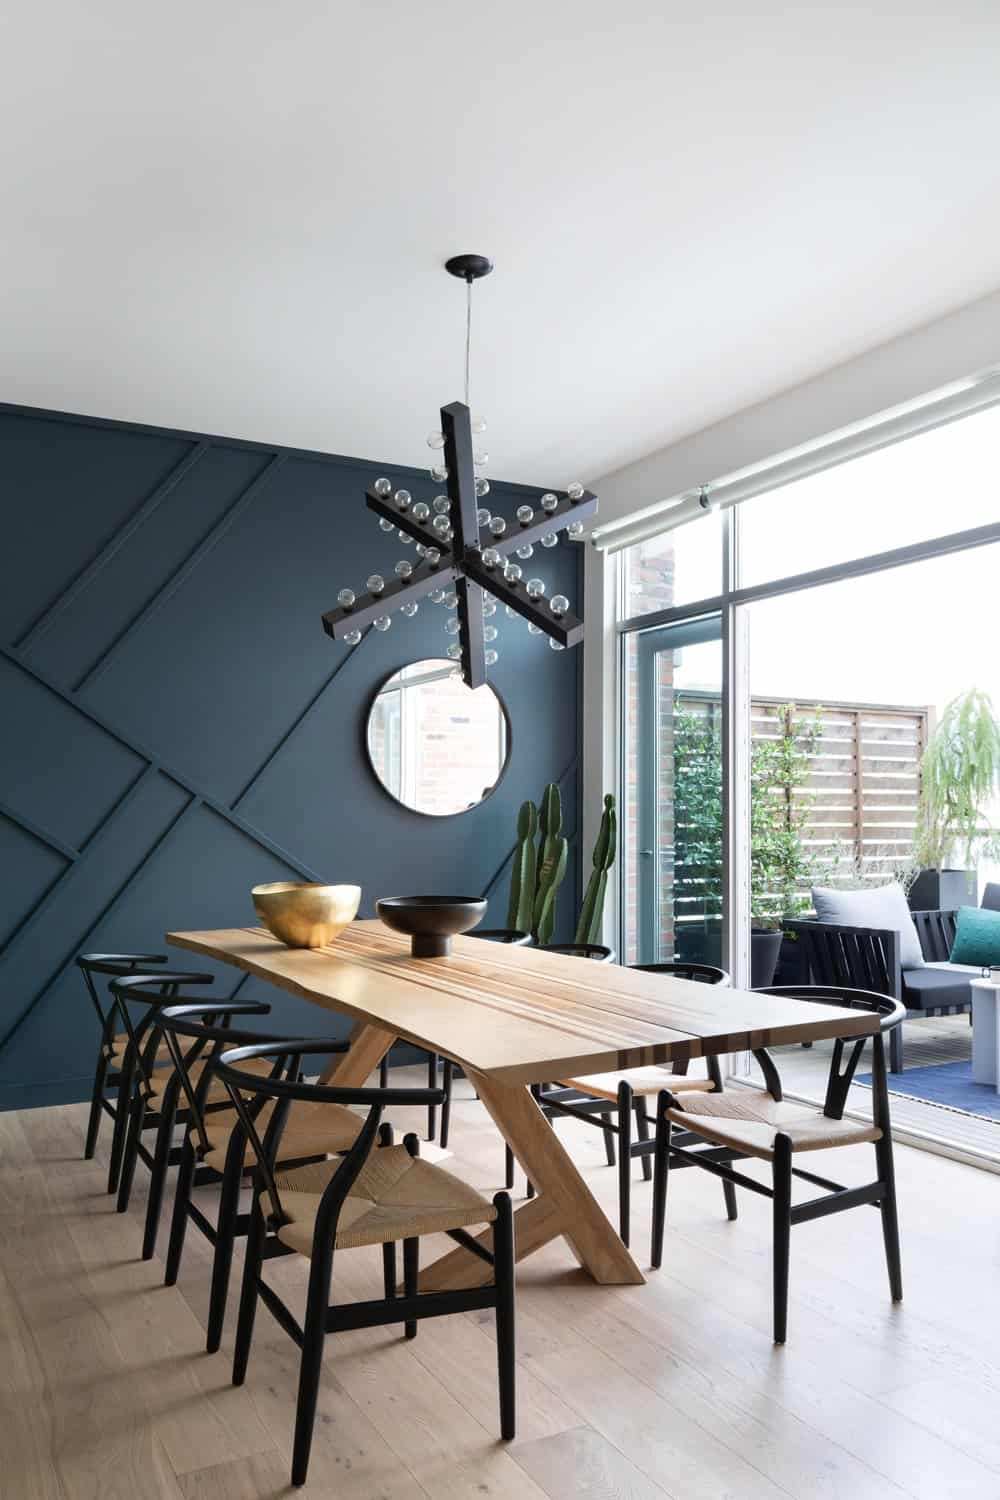 This is the charming dining area that has a large rectangular wooden dining table paired with black wishbone chairs that match well with the modern black decorative lighting and the navy blue textured and patterned wall on the far side.